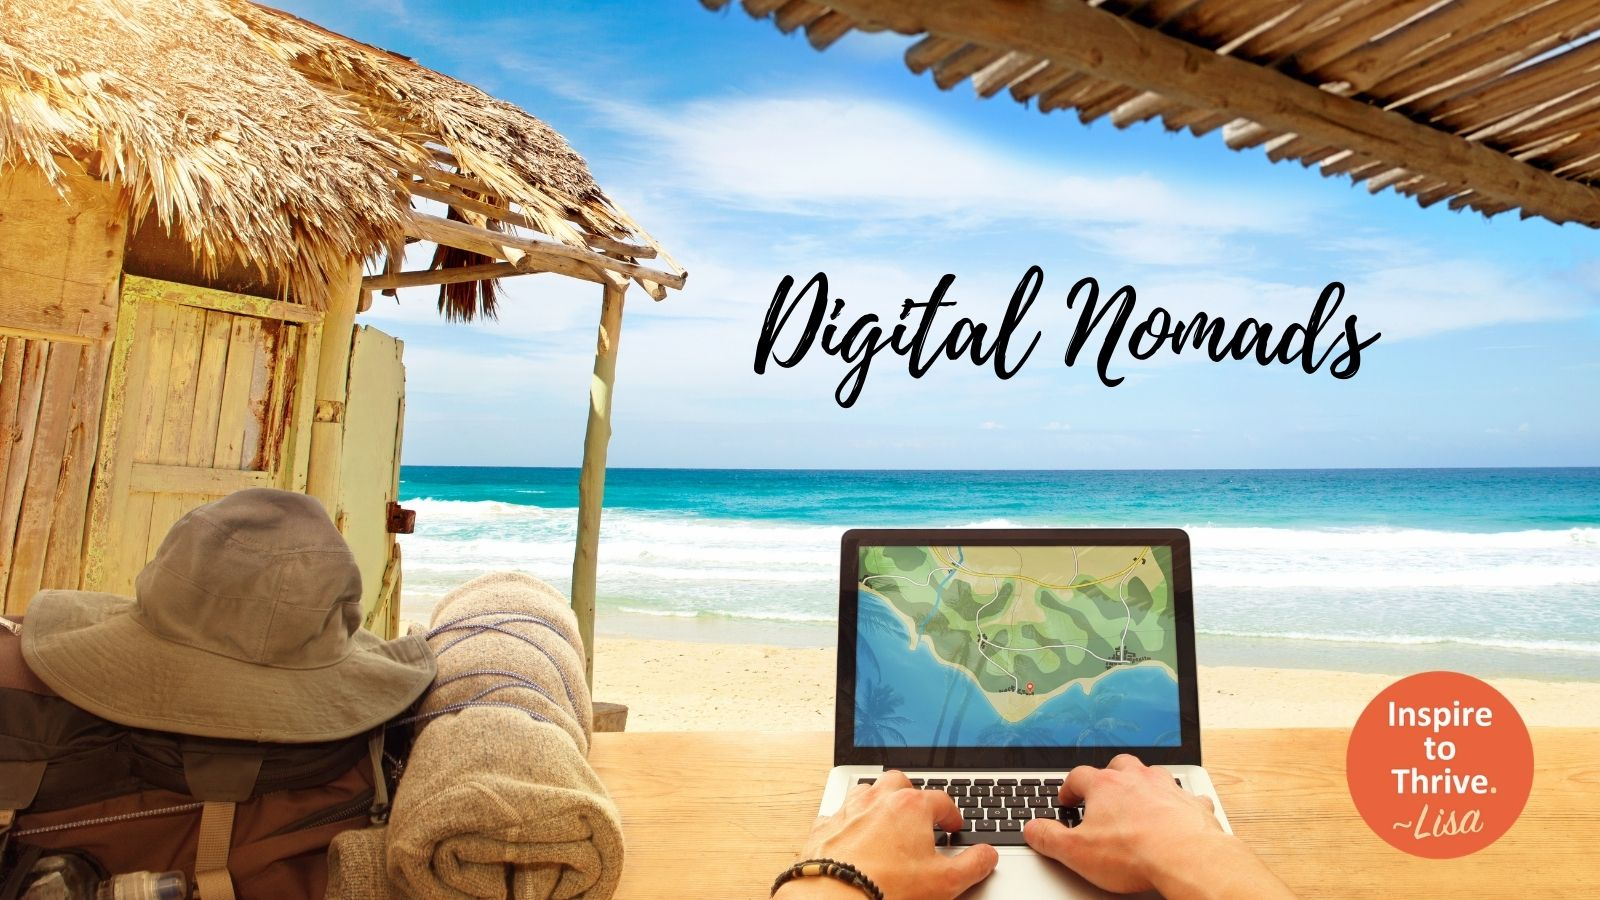 Countries for Digital Nomads